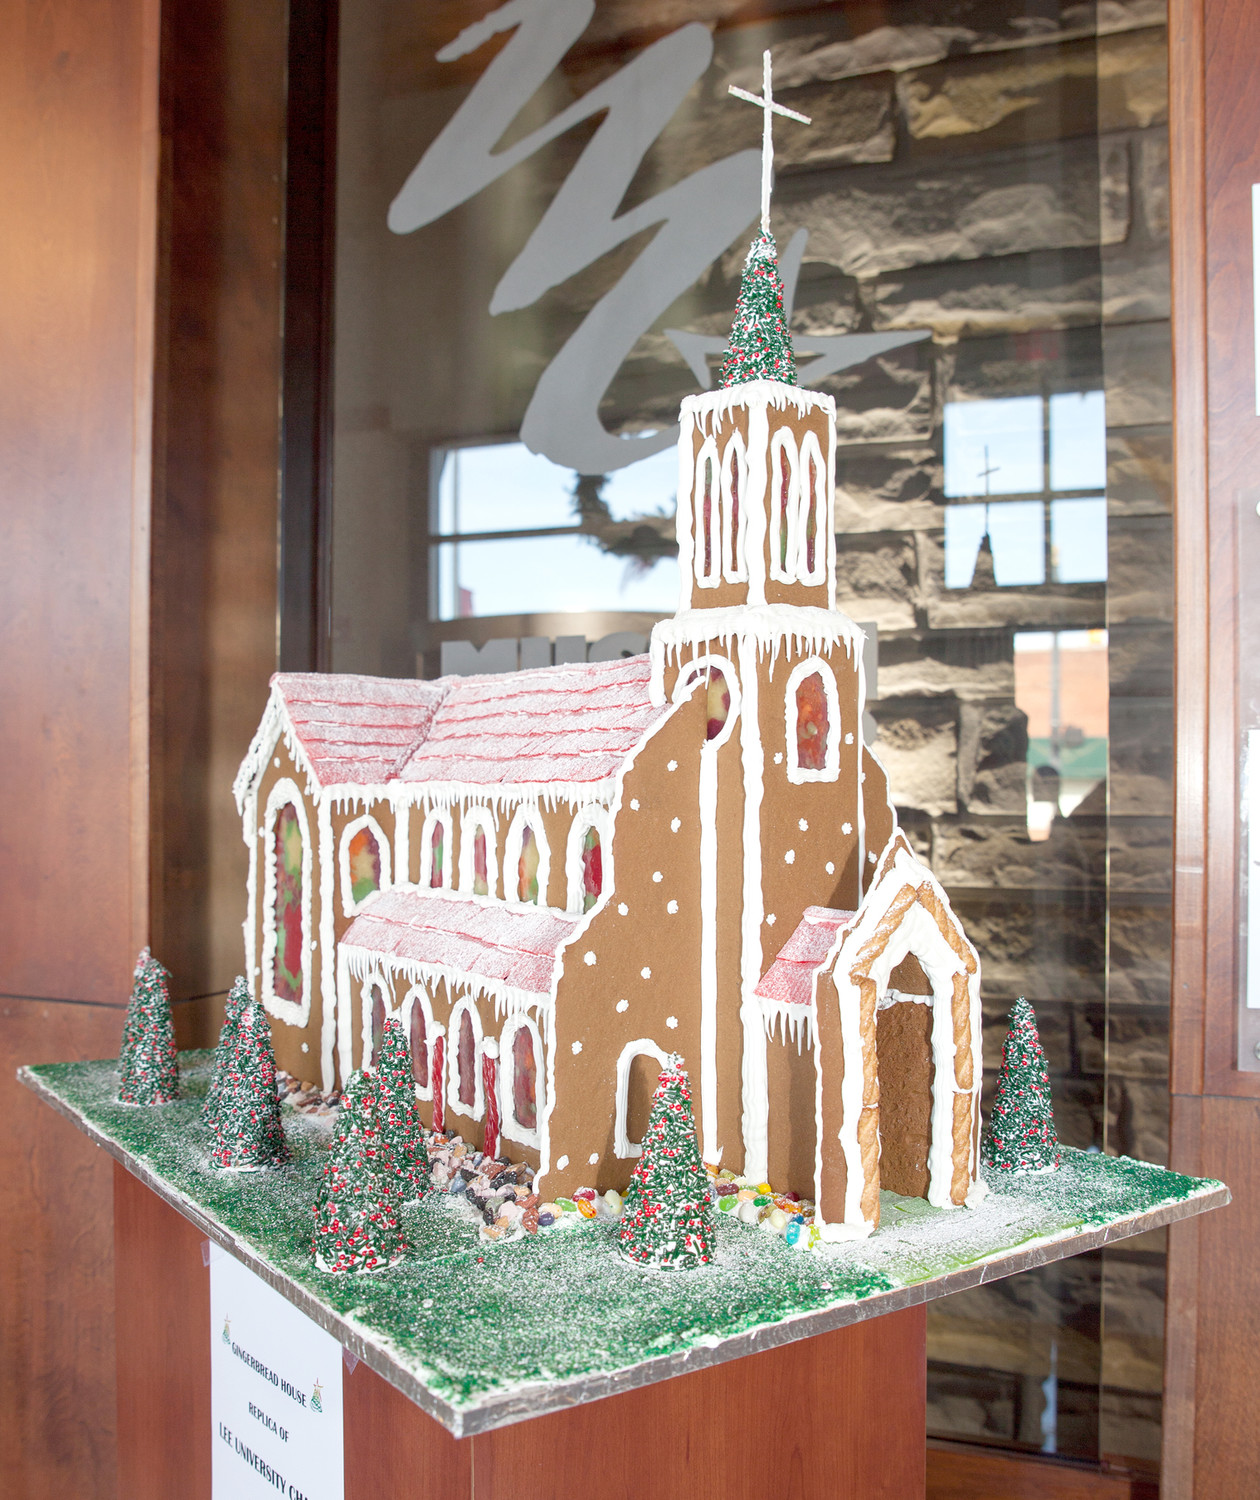 "REPRESENTATIVES MARINA SEPENUK and Valentina Mantsevich of Just a Bakery brought with them to the Christmas Open House event a masterful example of a gingerbread house: The Lee University Chapel.  In addition to the meticulous gingerbread and frosted detail, the bakers fashioned melted sugar ""stained glass"" windows for the display."